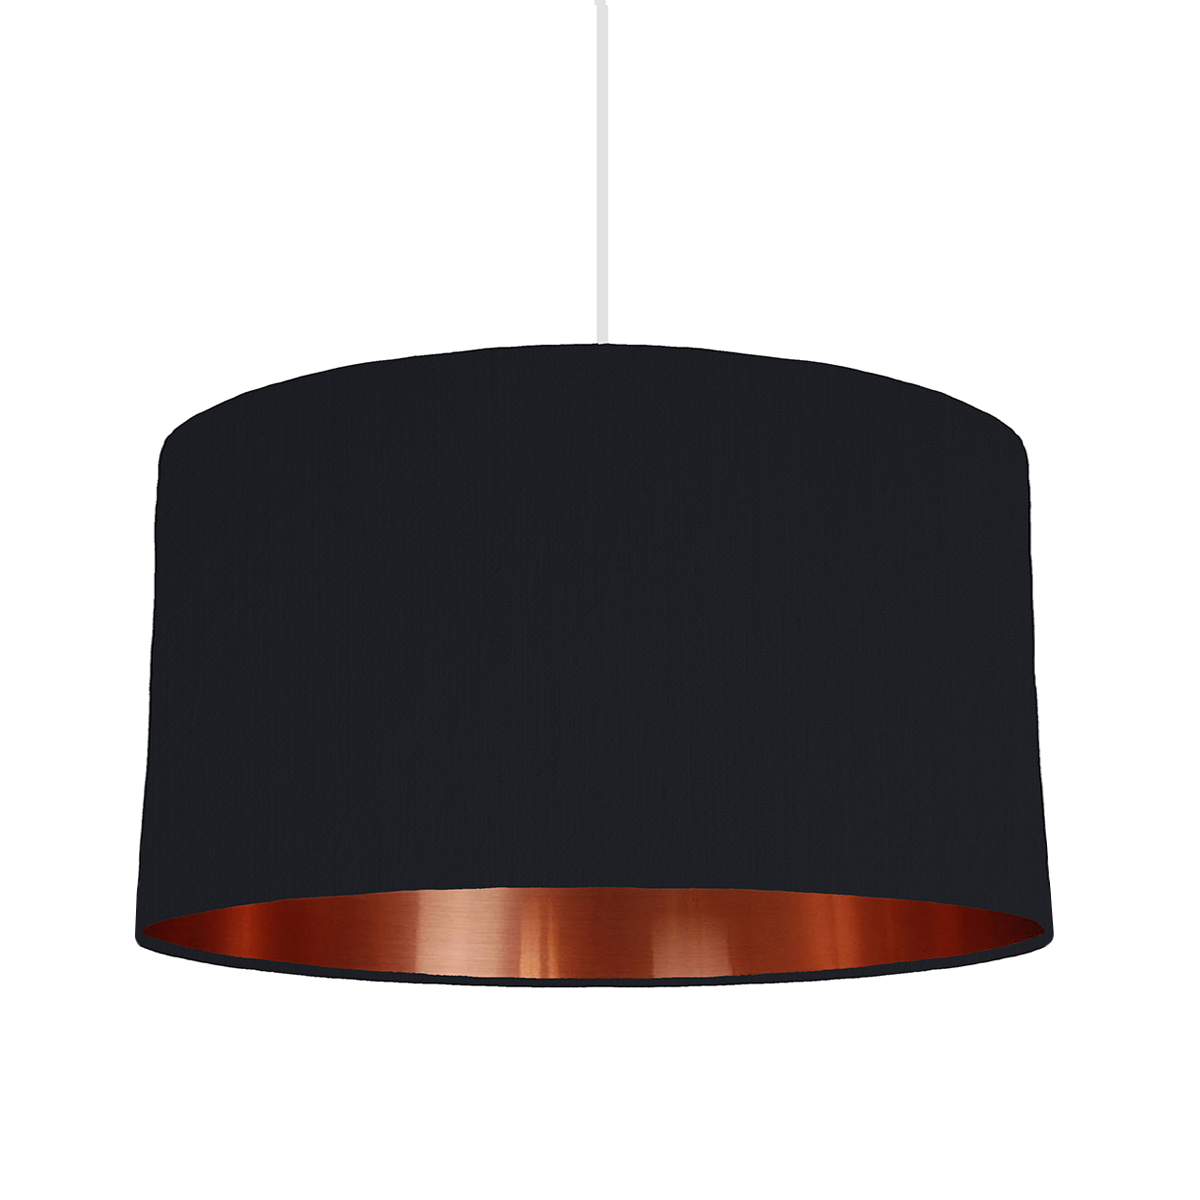 Black & copper lampshade